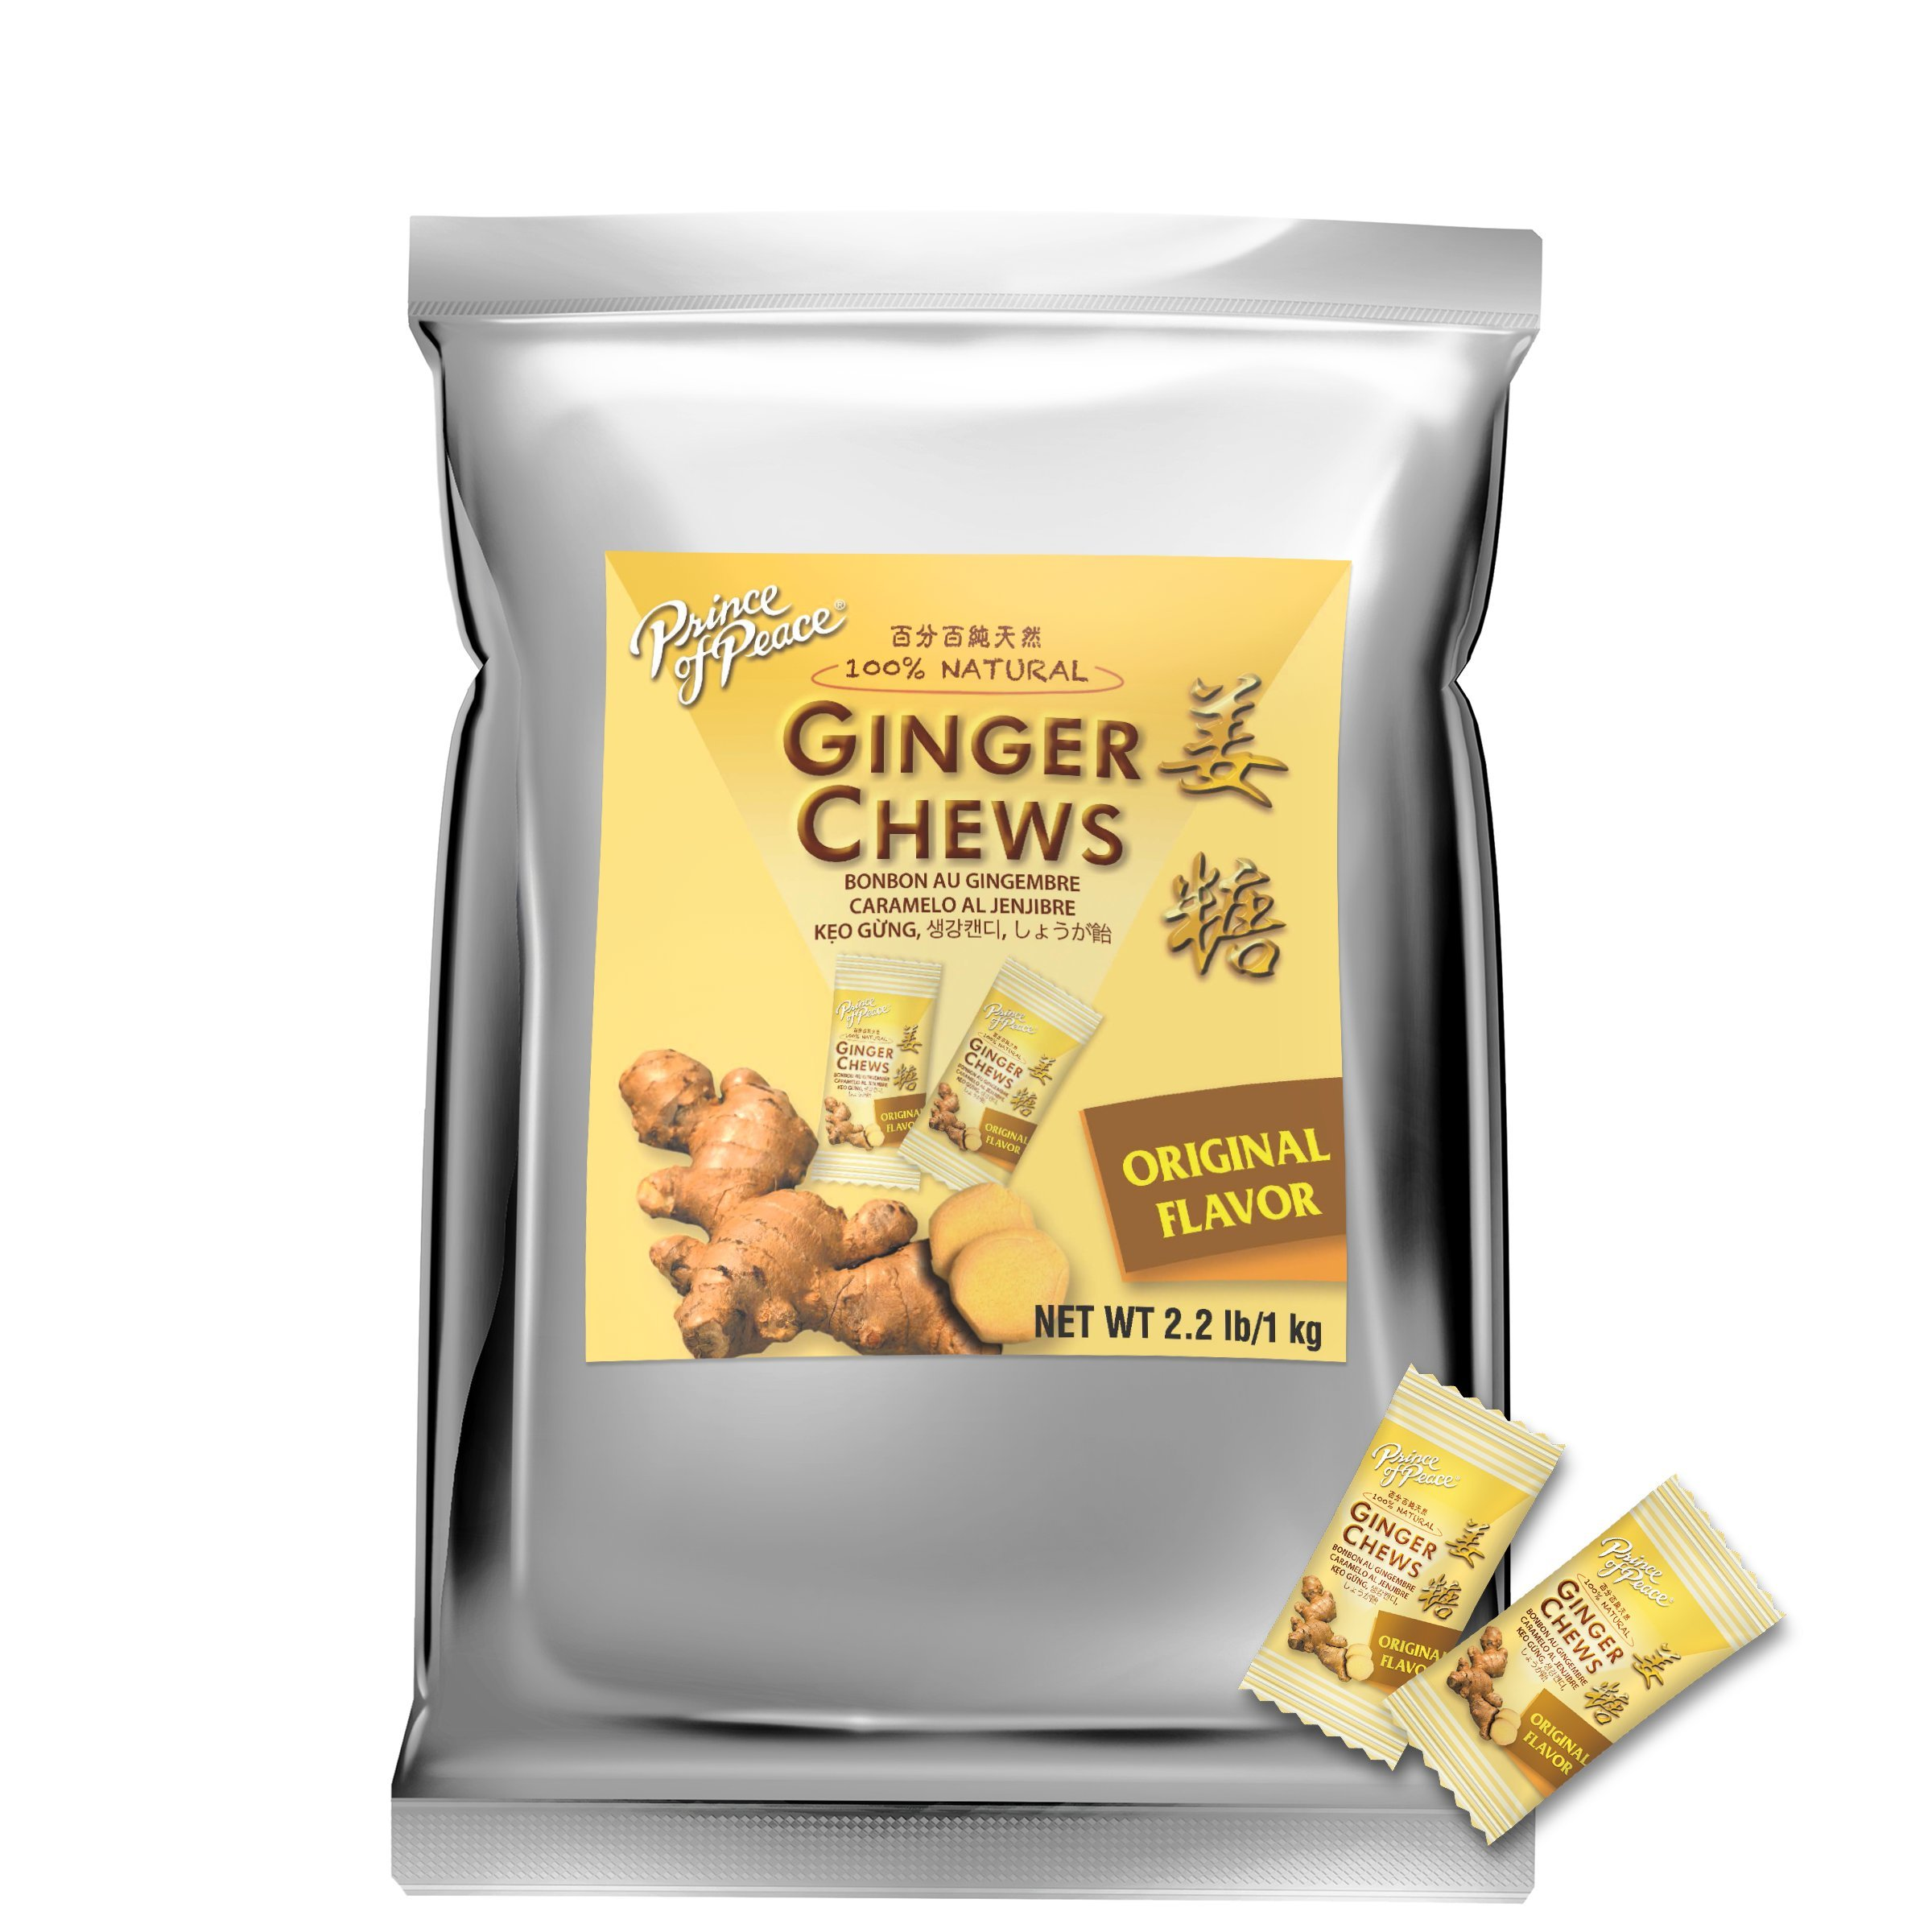 Prince of Peace 100% Natural Ginger Candy (Chews), 2.2lb/1kg by Prince Of Peace (Image #1)